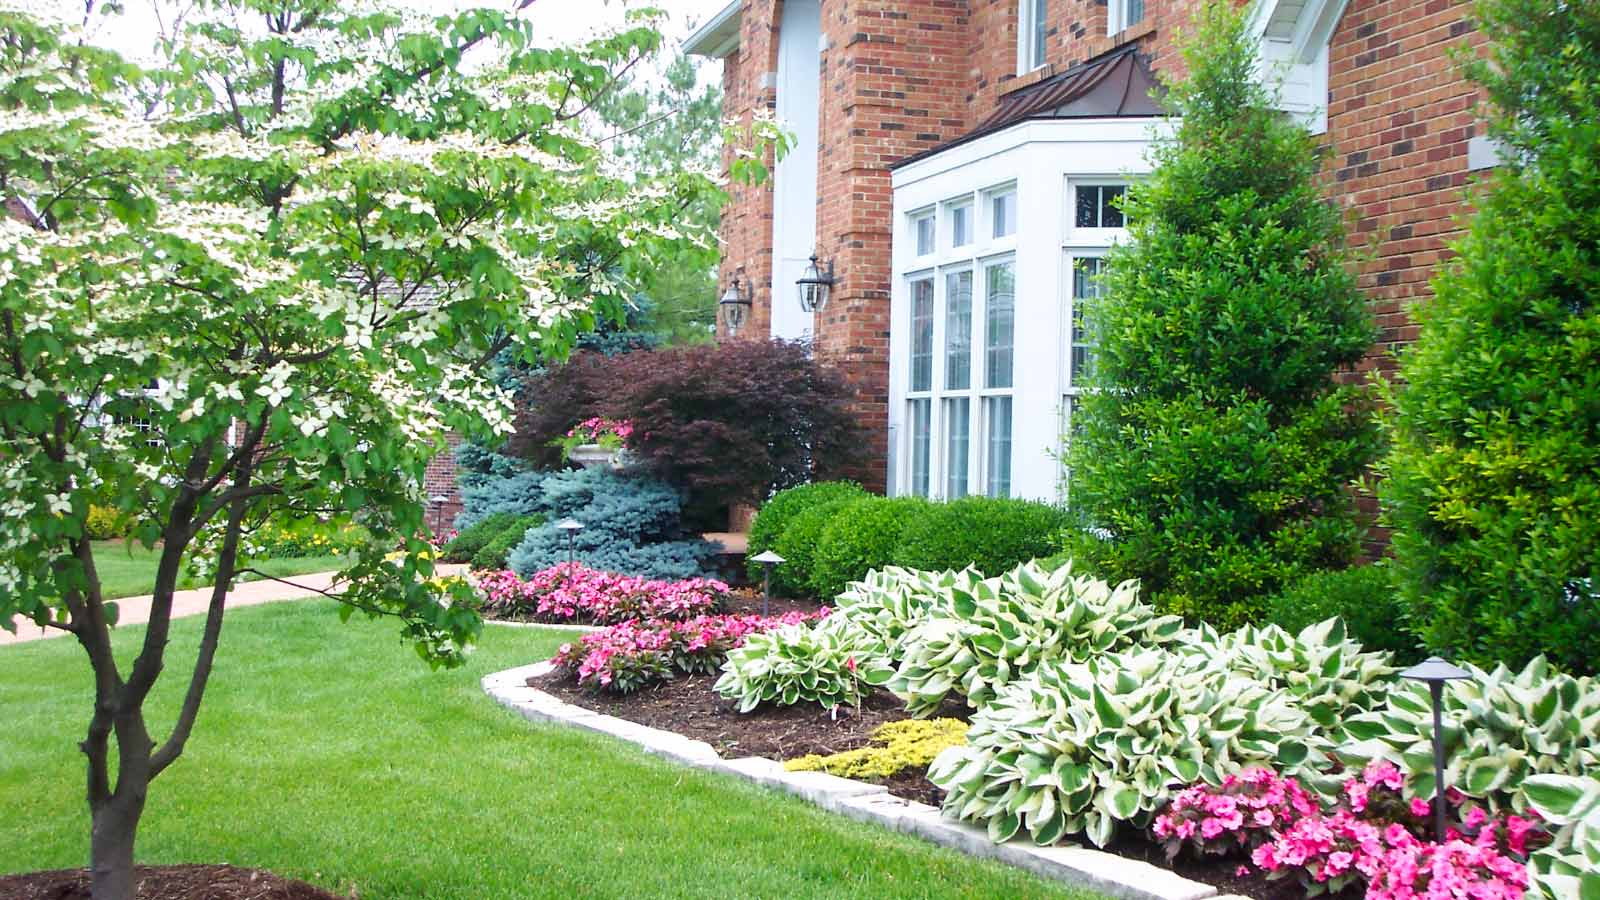 Let's Discuss Your Landscaping Project